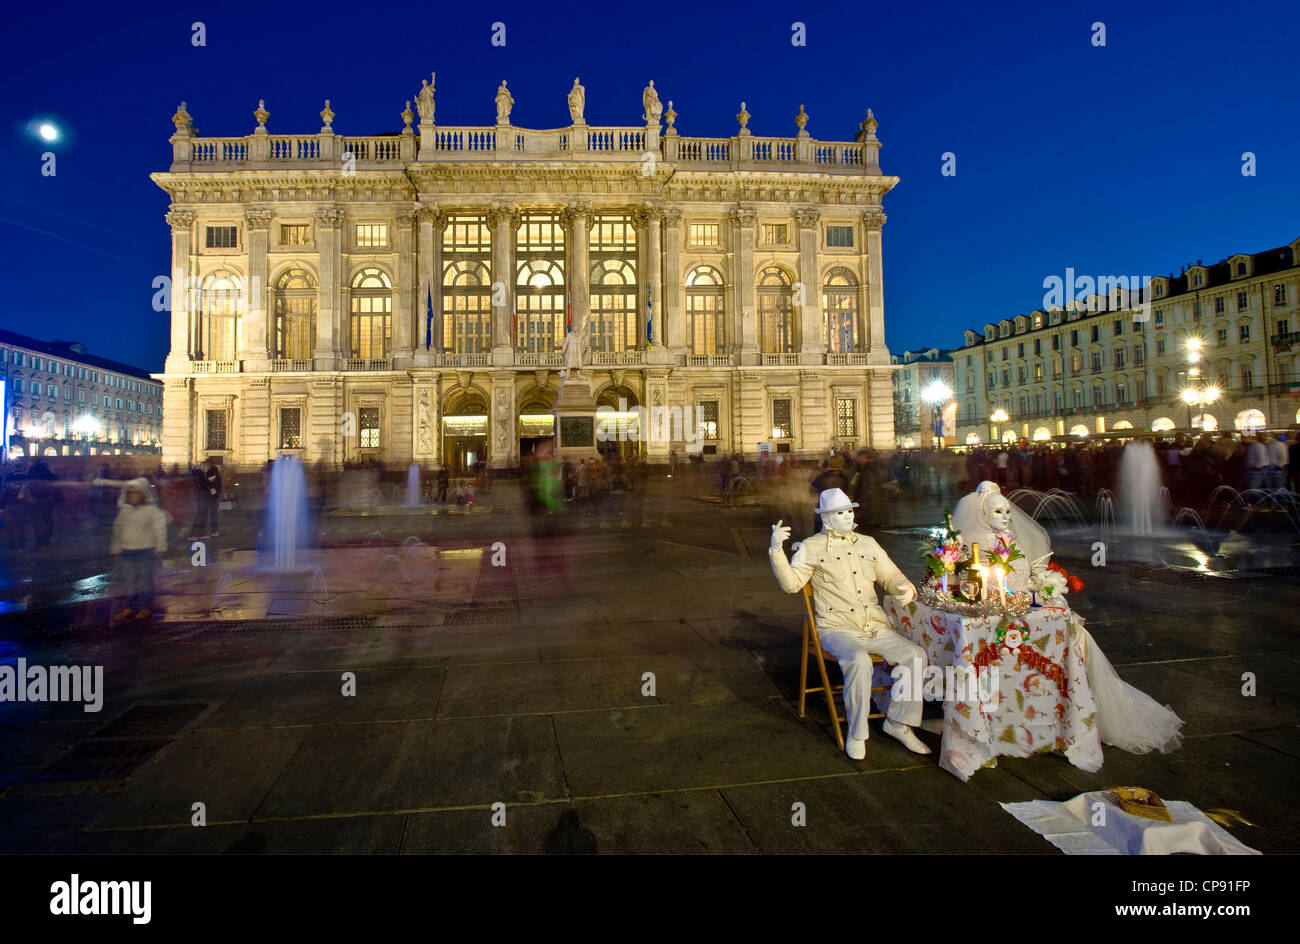 Europe Italy Piedmont Turin, Piazza Castello, the Palazzo Madama and Two street performer - Stock Image